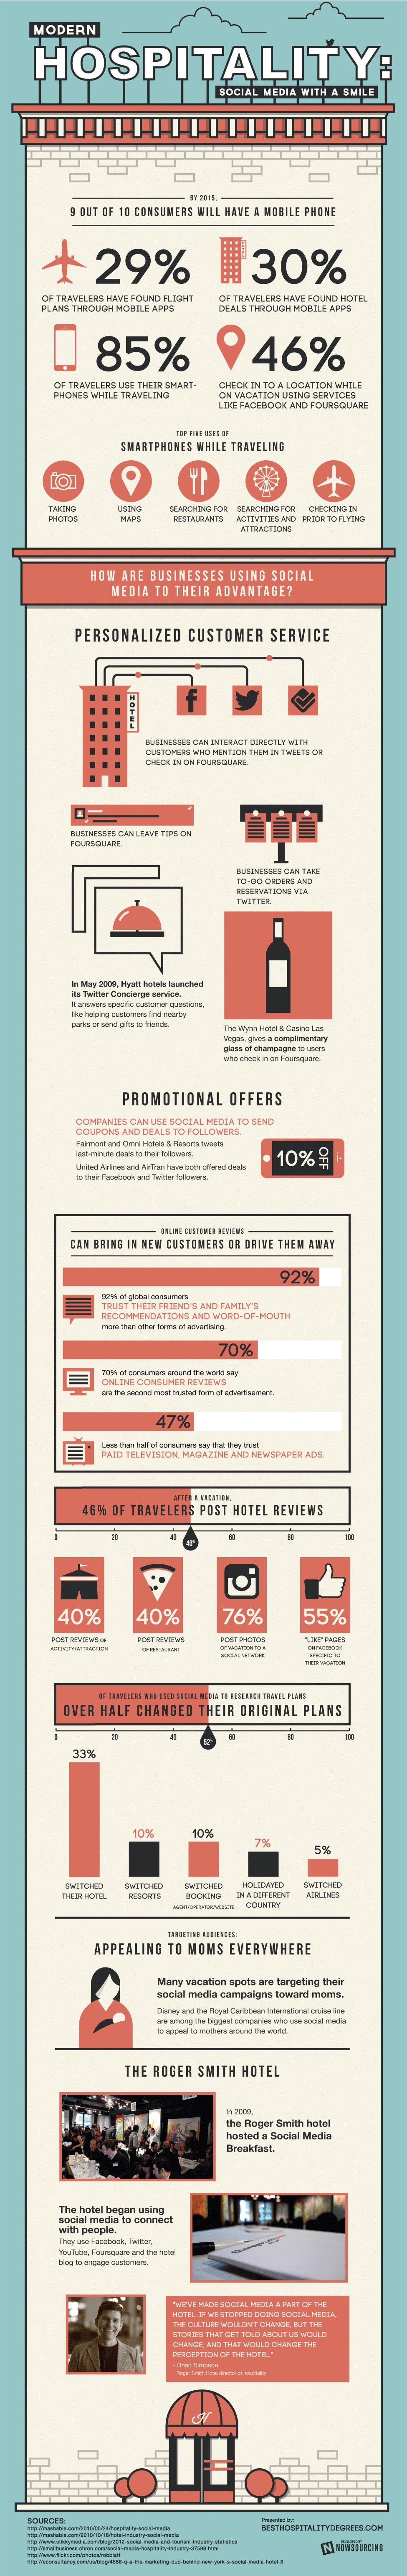 How Social Media Customer Service Could Evolve By 2015 [Infographic]